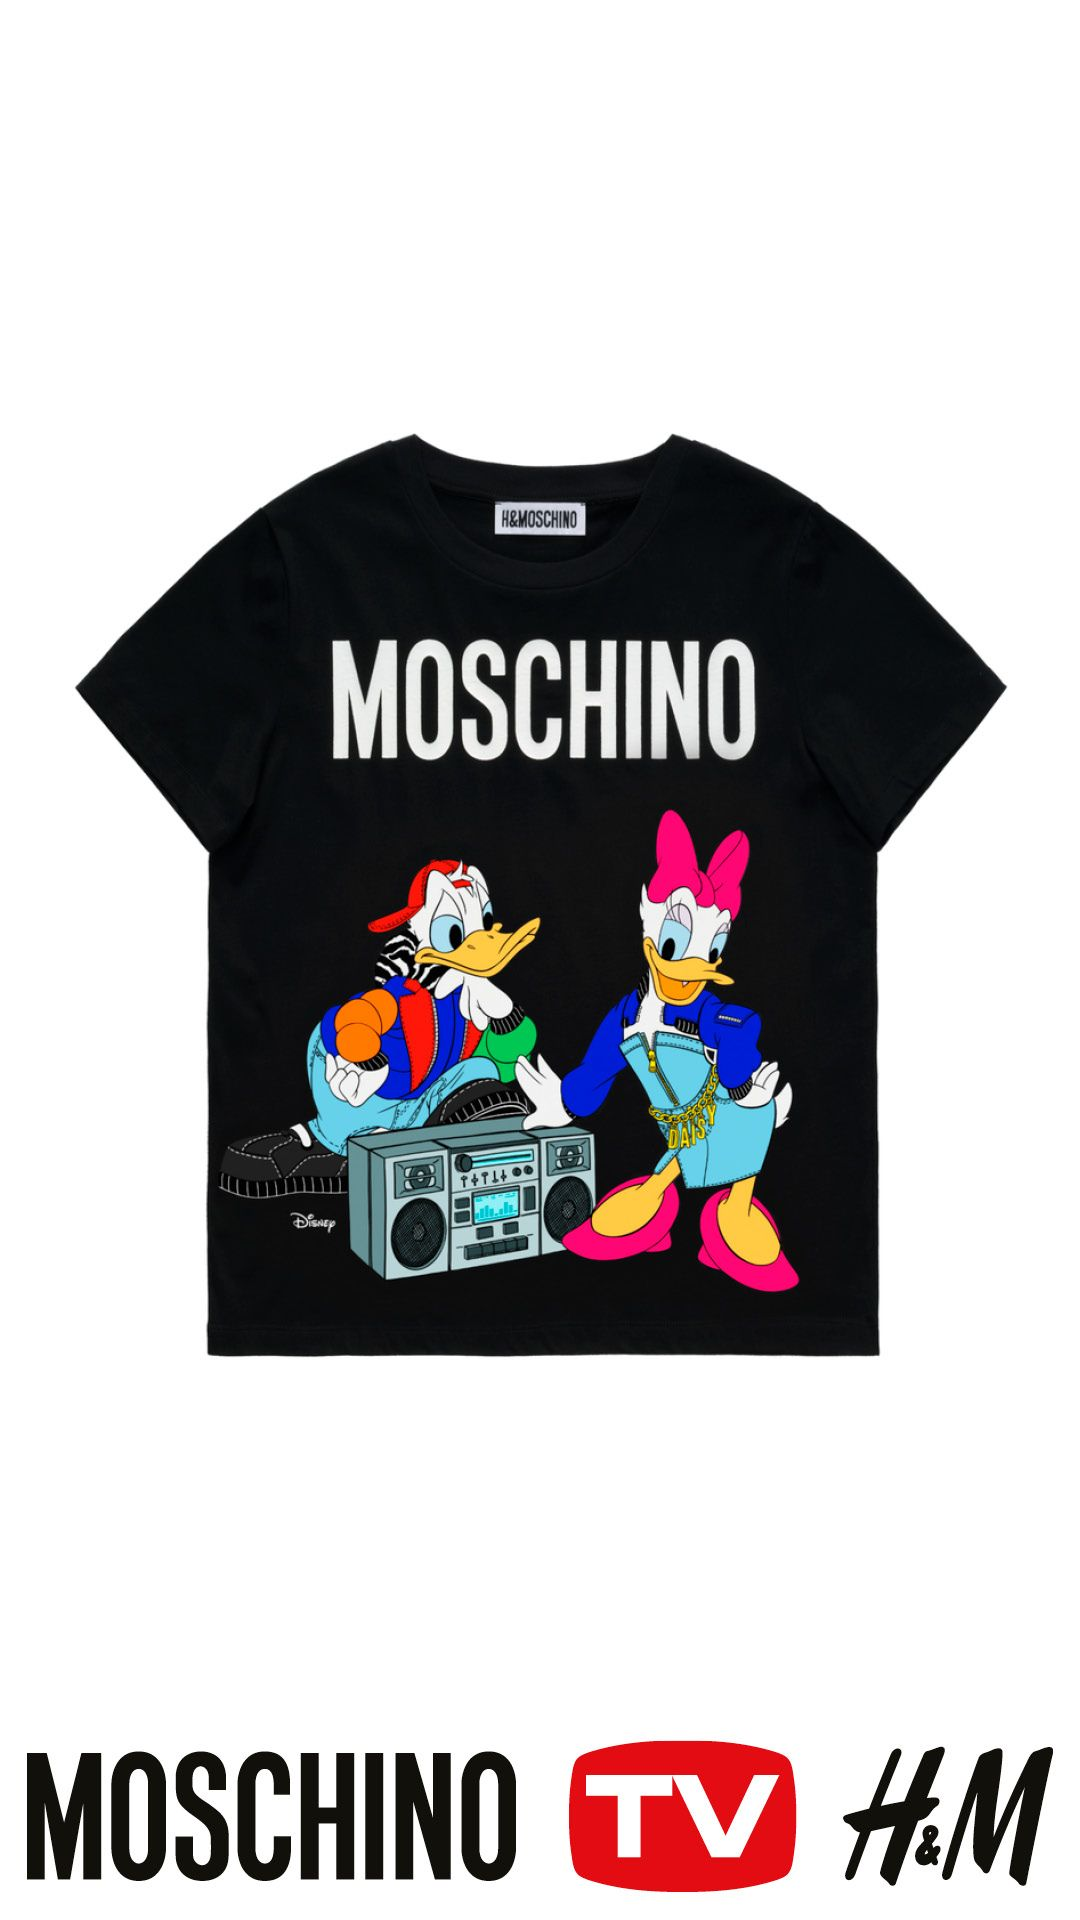 fde0f1888c2f04 MOSCHINO  tv  H amp M features bold streetwear-inspired clothing and  accessories for